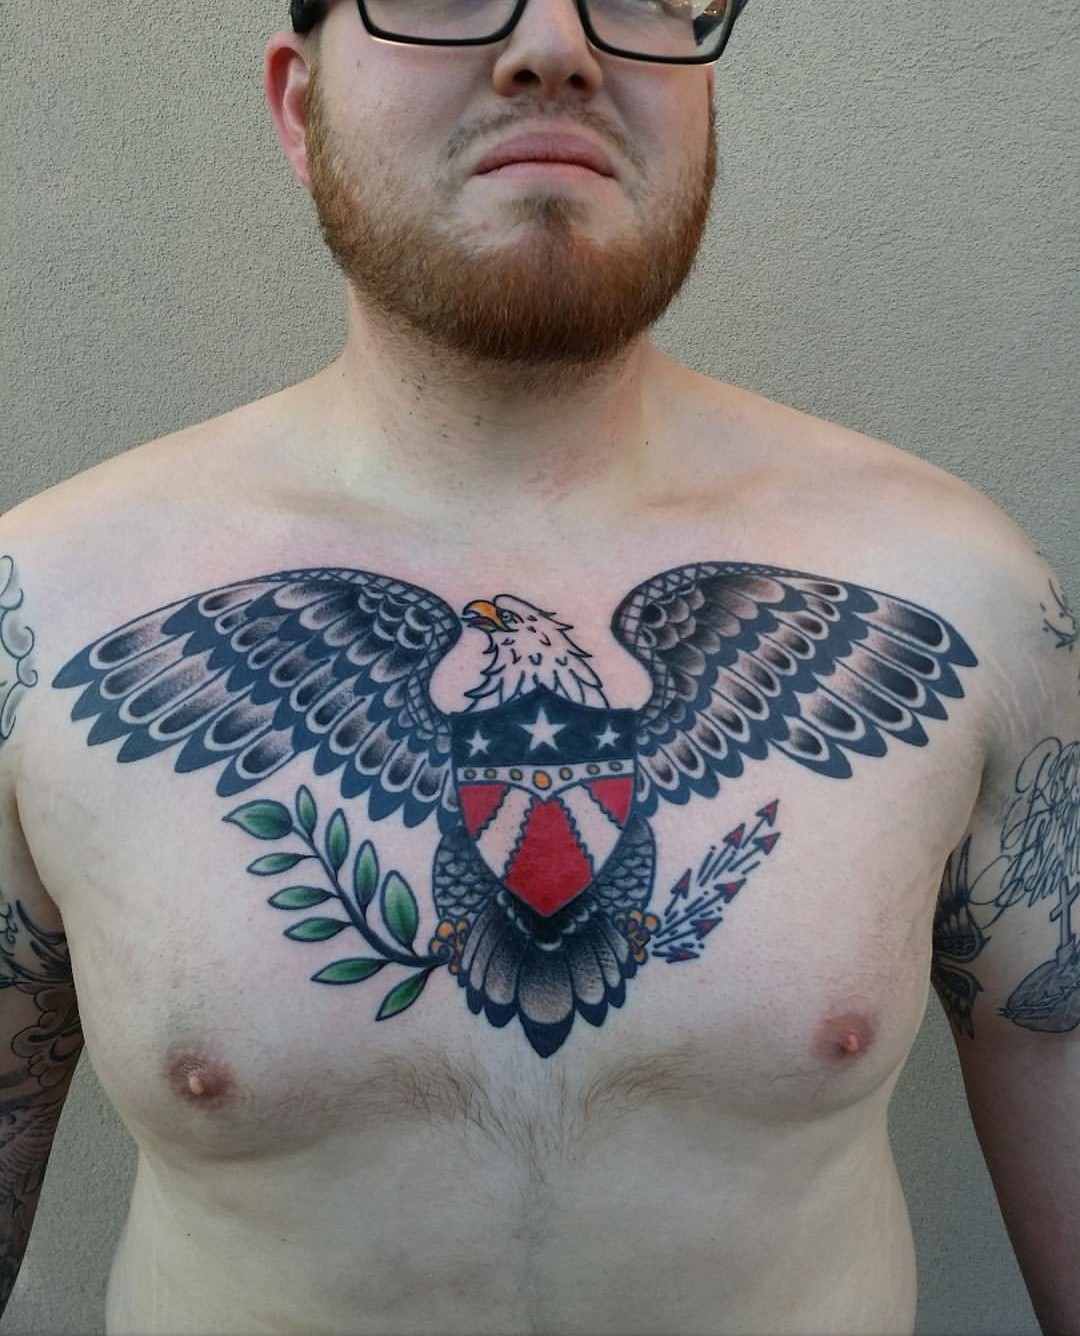 Chest Hawks/Eagles Neo-Traditional Traditional/Americana Tattoo